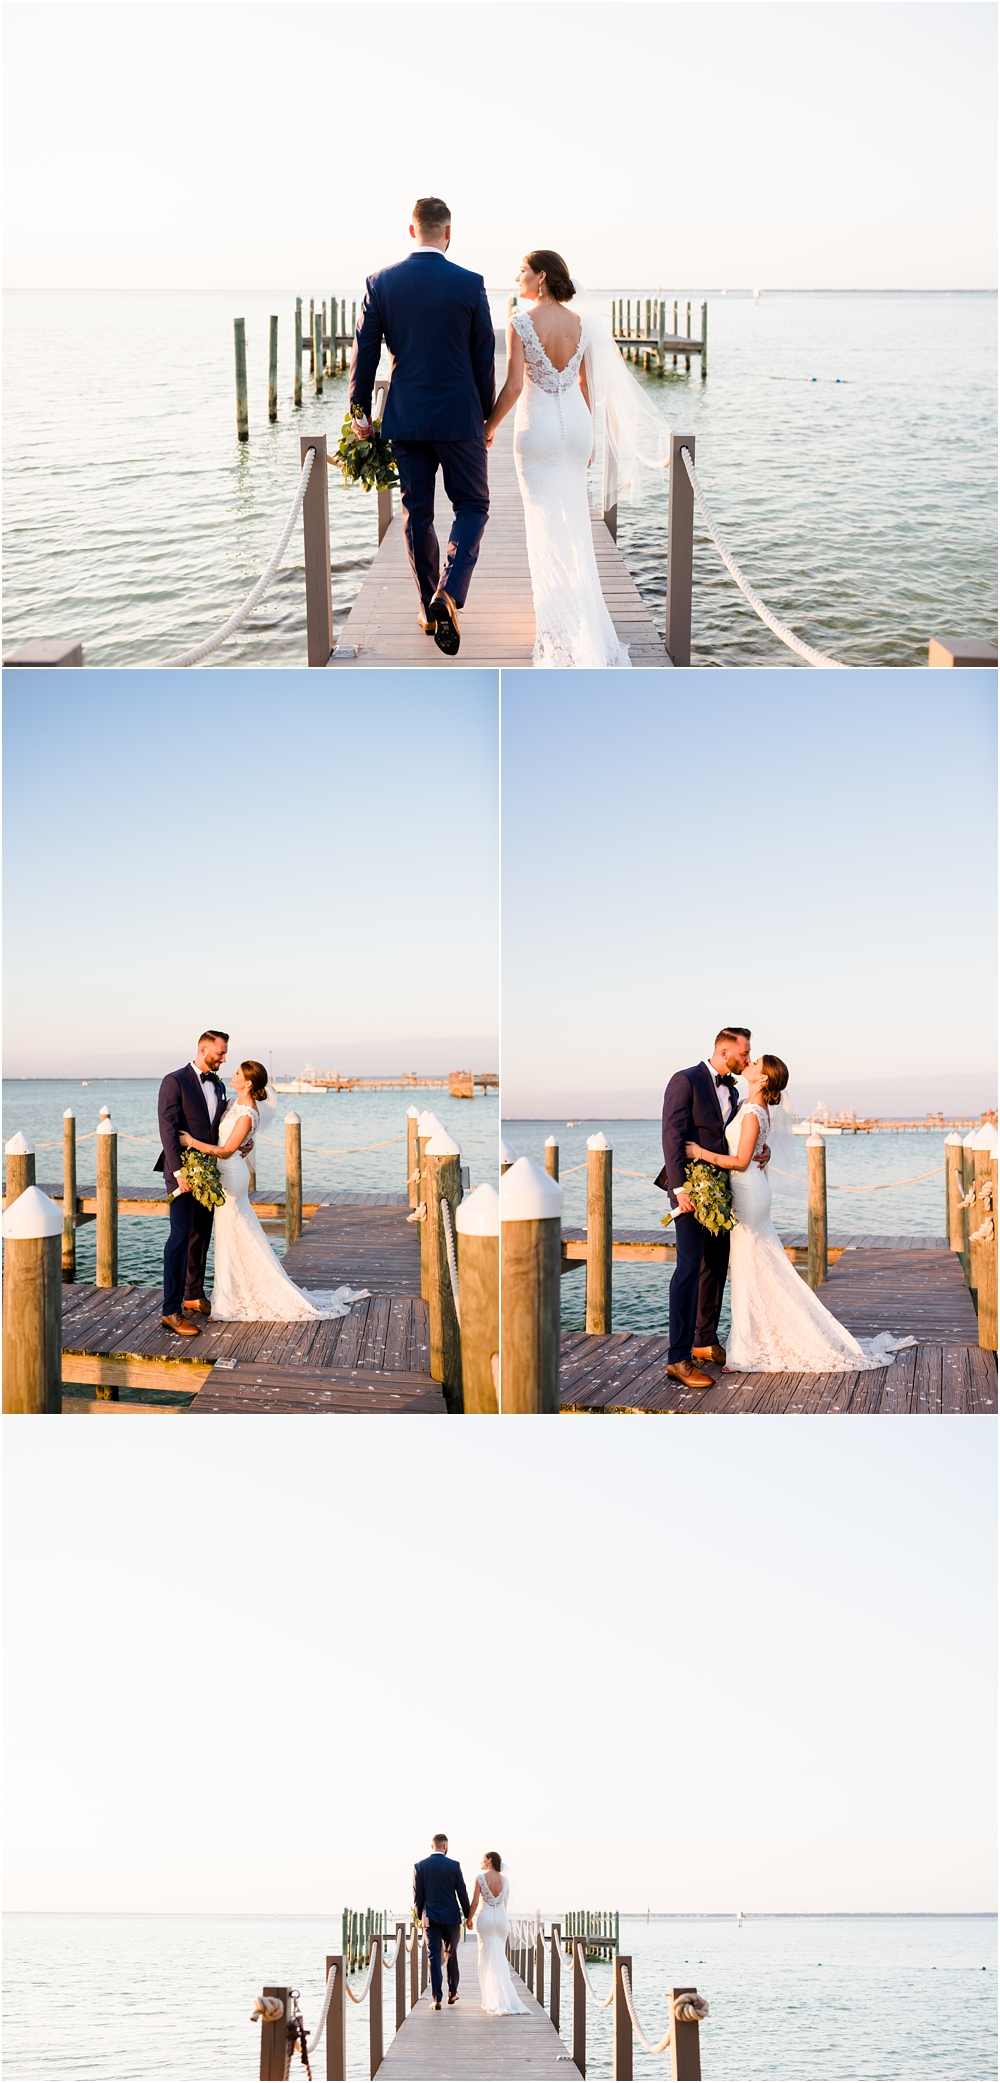 varner-florida-wedding-photographer-30a-panama-city-beach-destin-tallahassee-kiersten-grant-photography-112.jpg